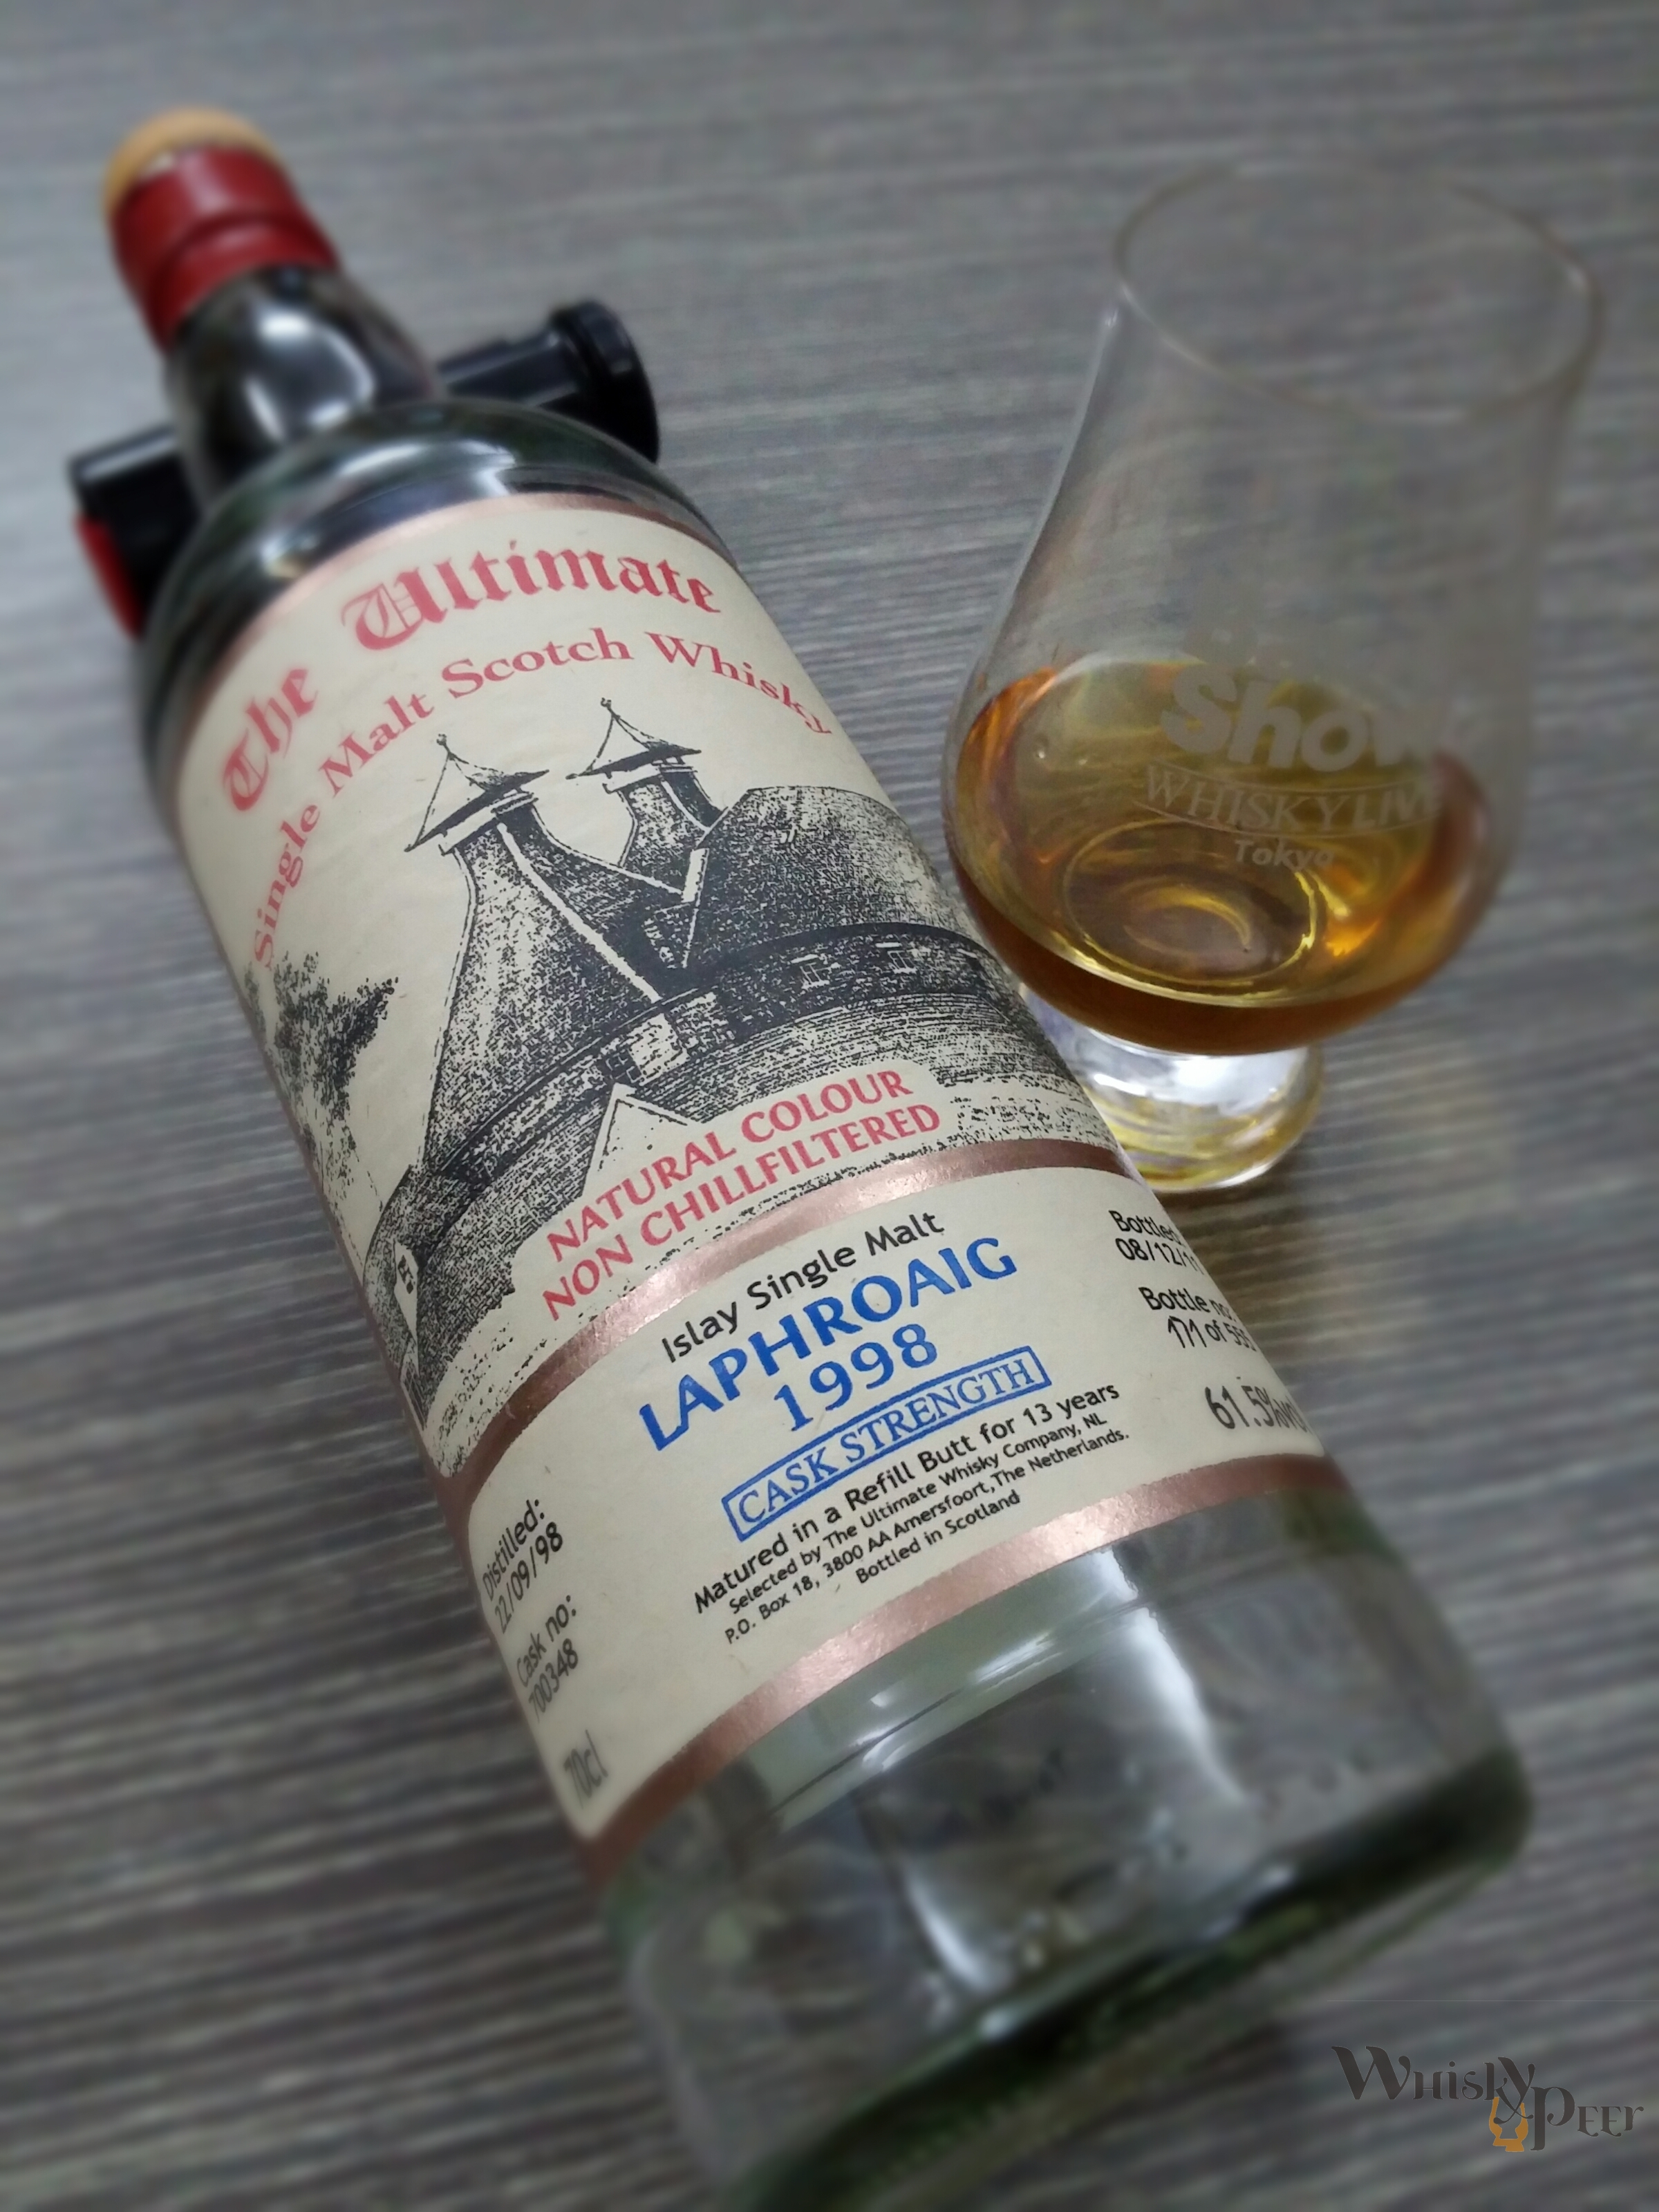 Lapgroaig 1998 Cask Stregnth - The Ultimate C# 700348 Refill Butt for 13 Years